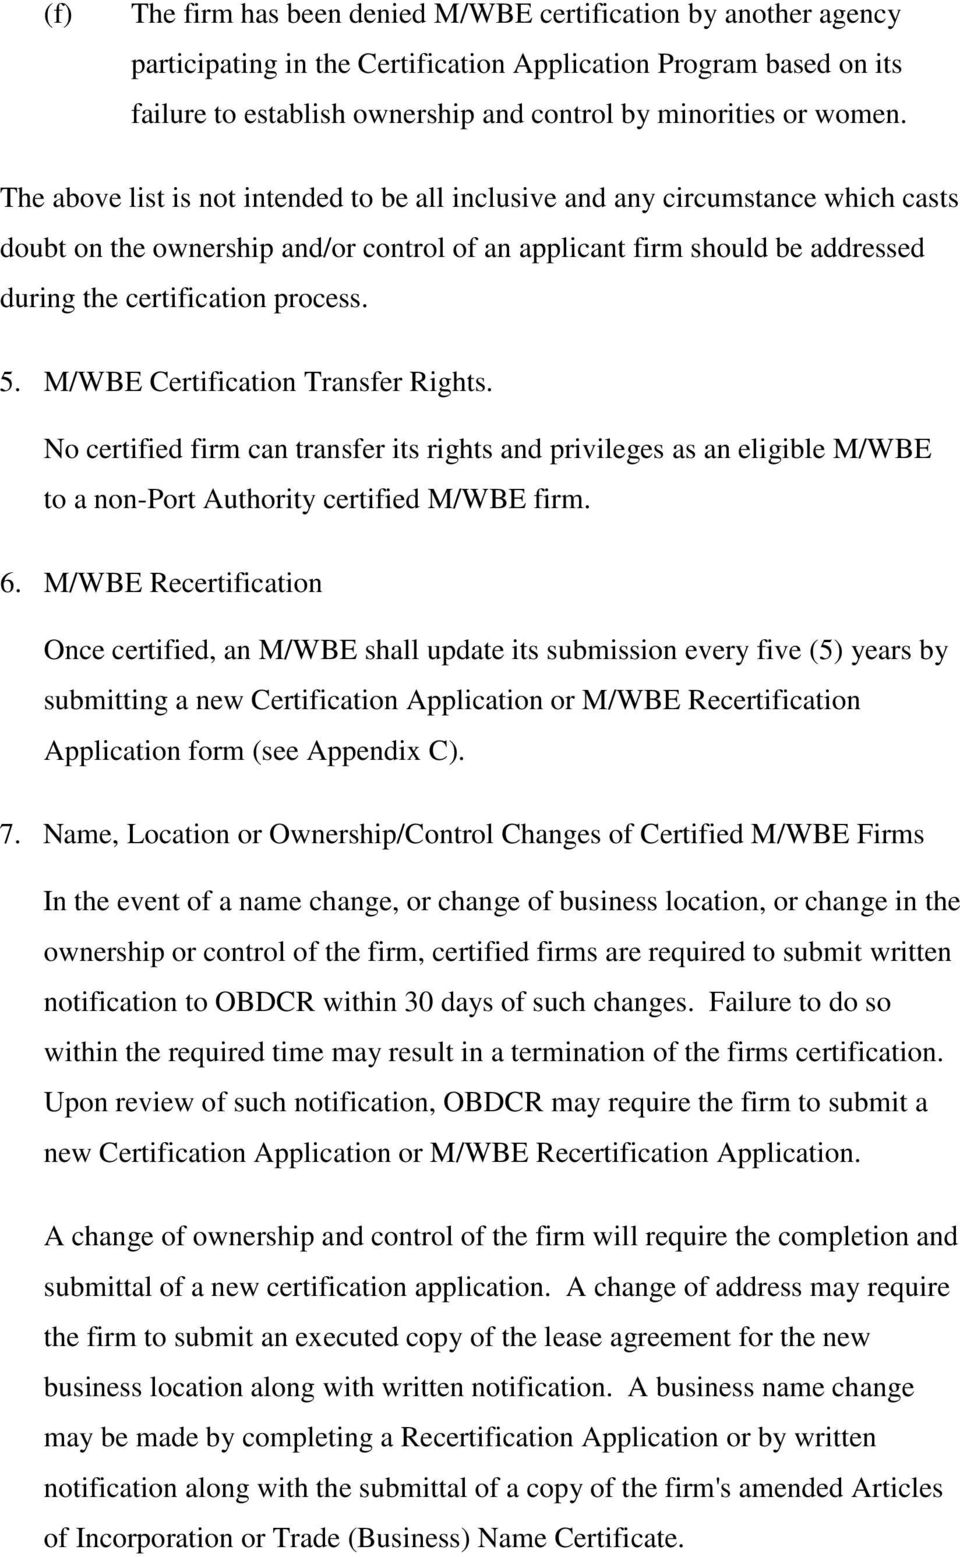 The above list is not intended to be all inclusive and any circumstance which casts doubt on the ownership and/or control of an applicant firm should be addressed during the certification process. 5.